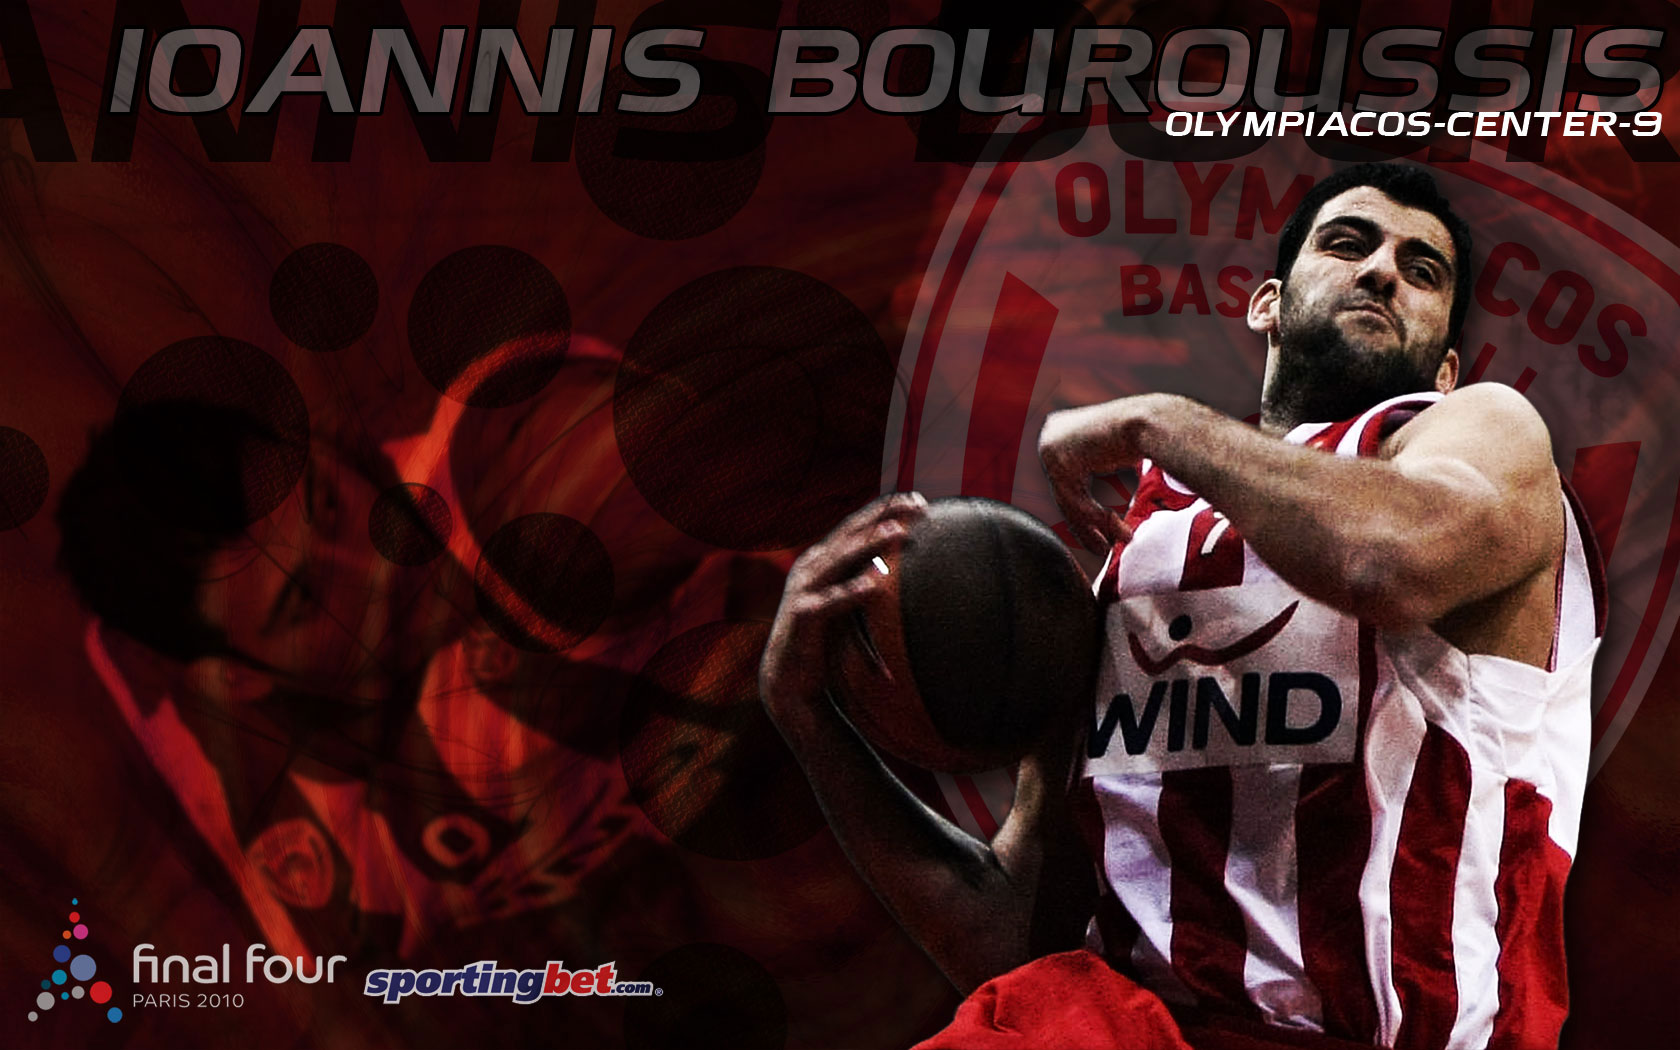 Ioannis Bourousis Widescreen